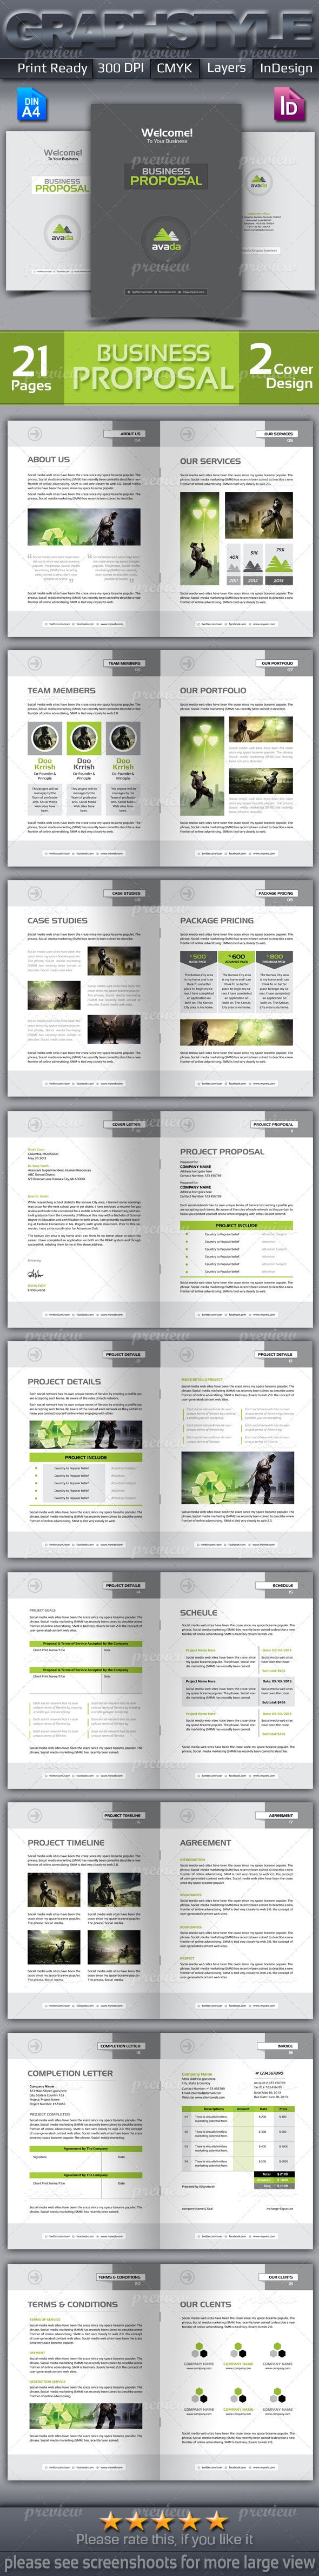 Avata Business Proposal  Business Proposal Proposals And Business